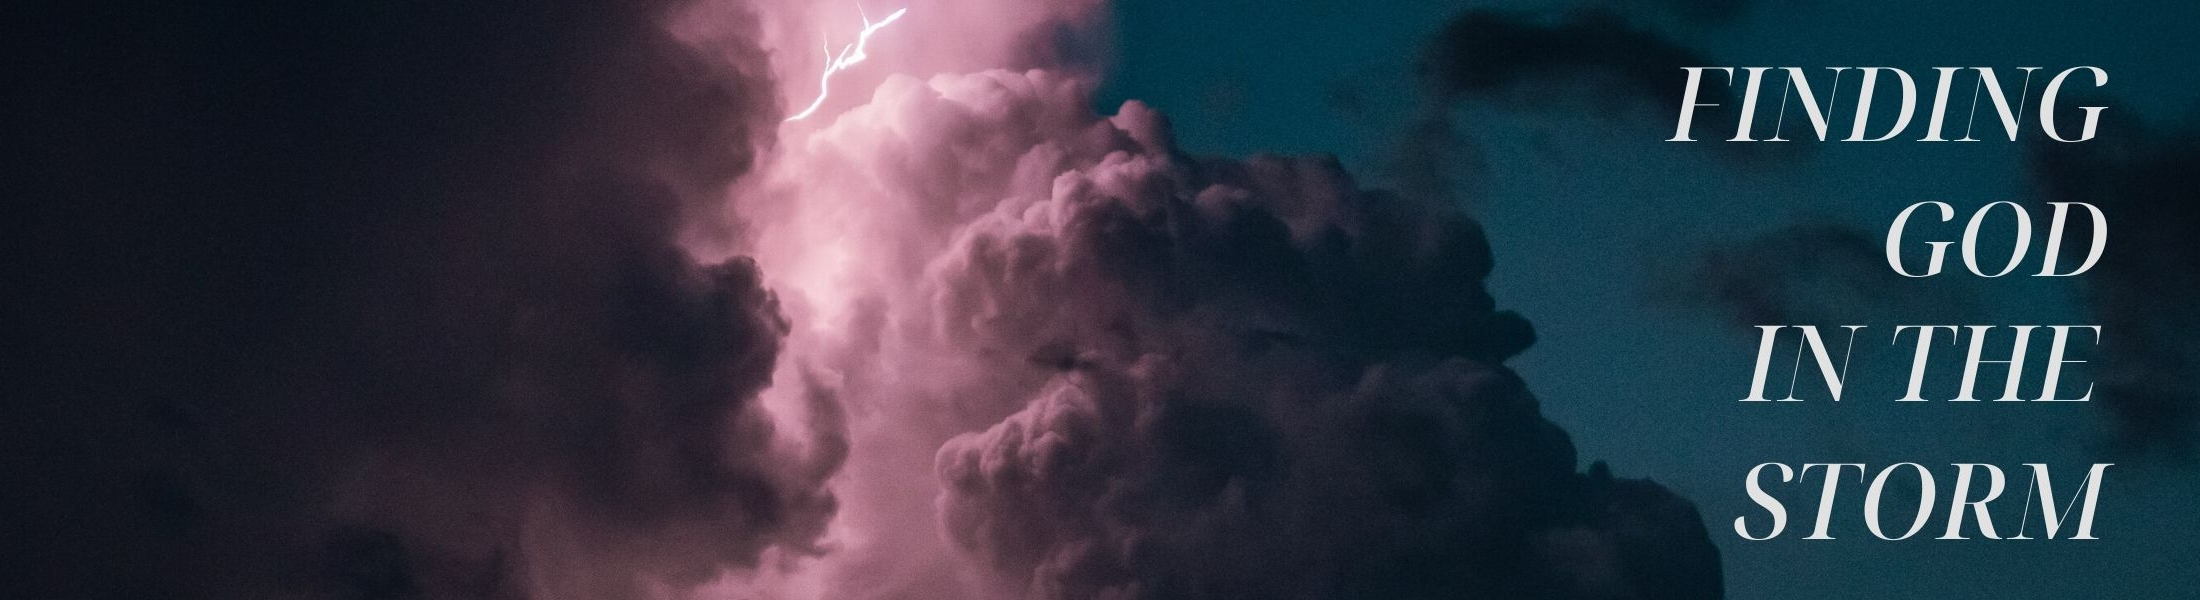 Finding God In The Storm Sermon Series